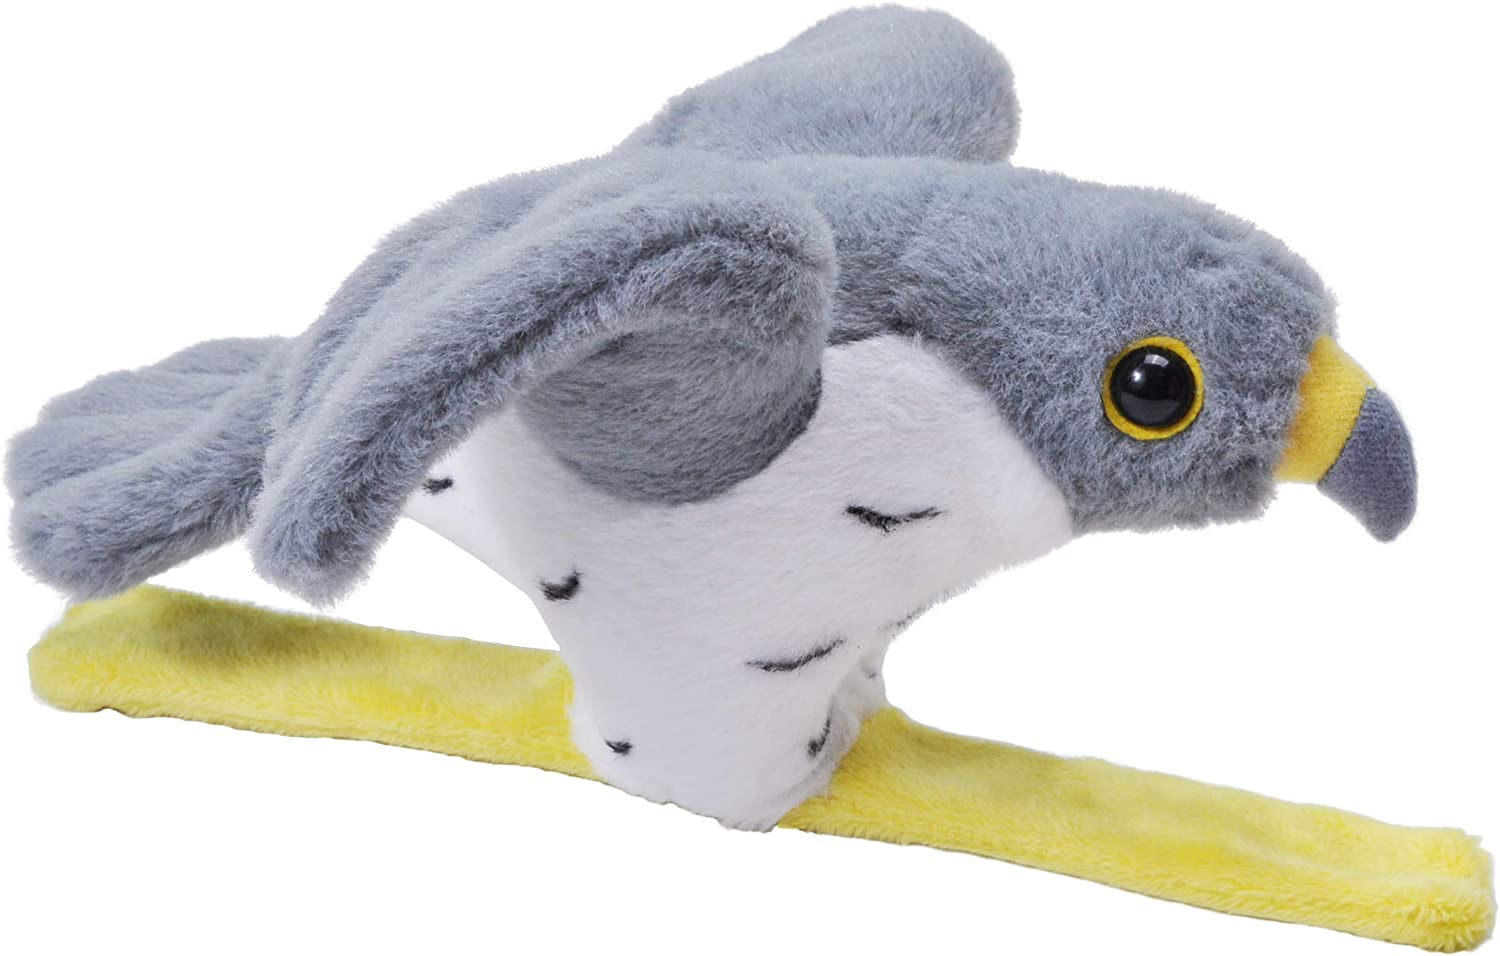 Plush Toy 9 Inches Wild Republic High Flyer Peregrine Falcon with Sound on a Snap Bracelet Fill is Spun Recycled Water Bottles Gift for Kids